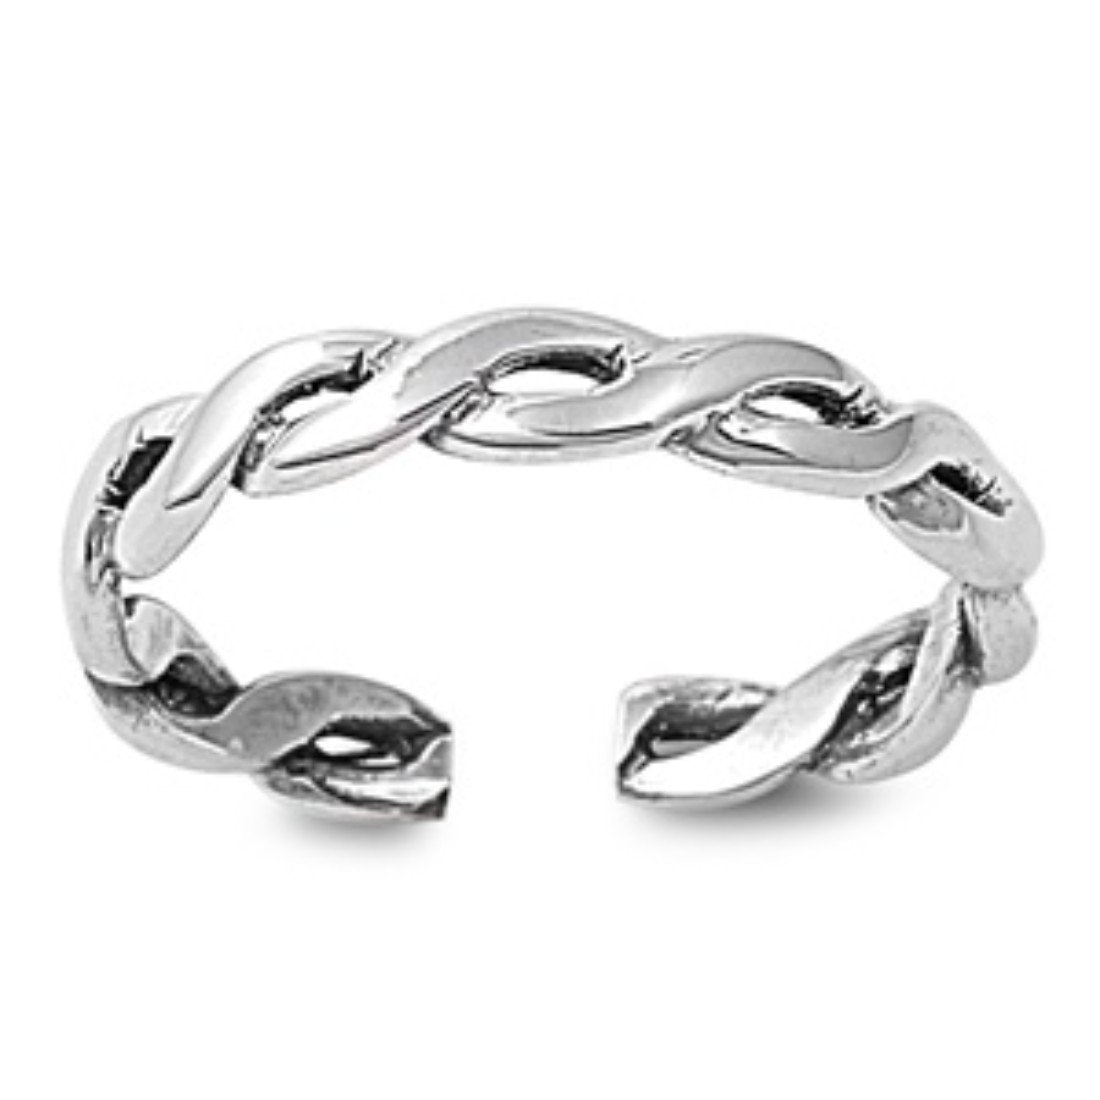 Silver Twist Braid Toe Ring Adjustable Band 925 Sterling Silver (3mm)